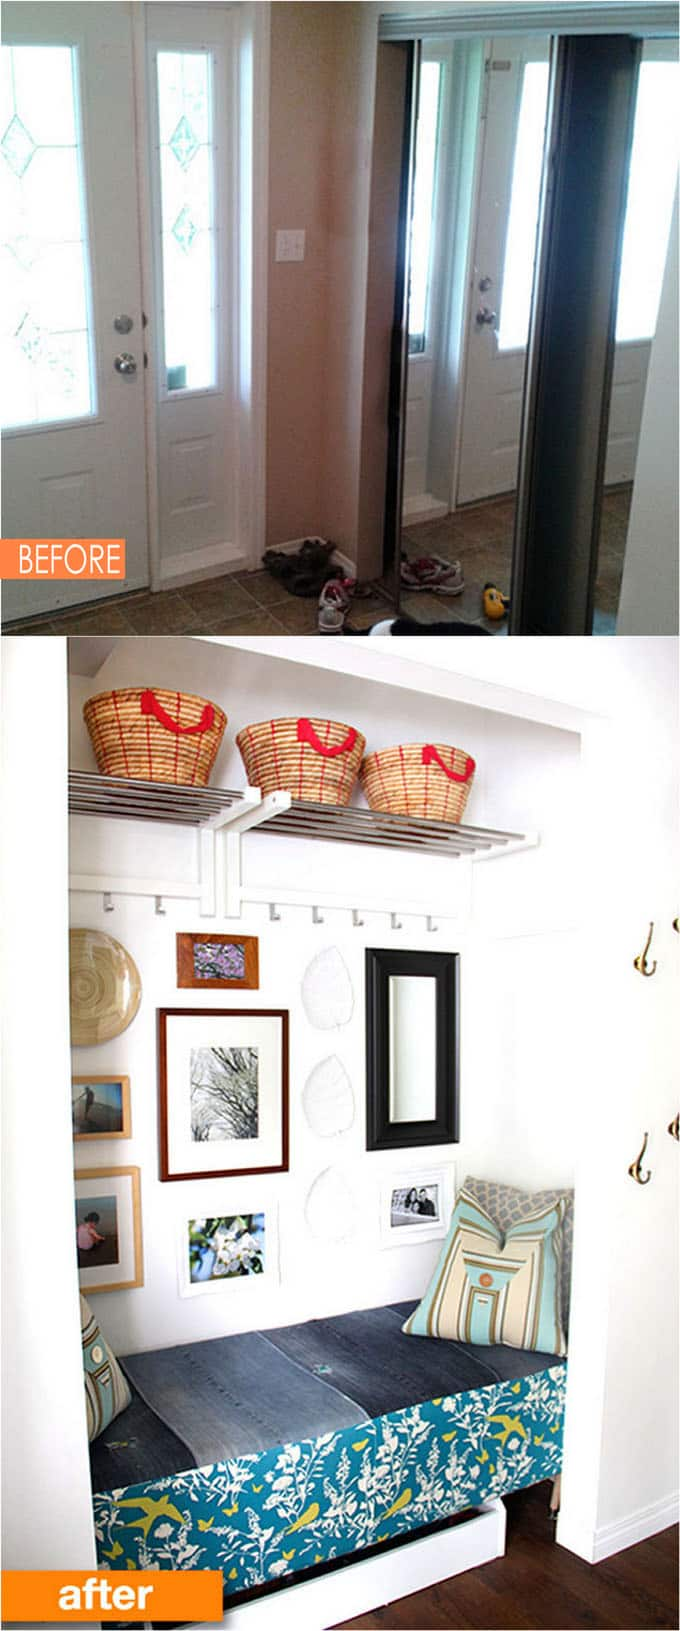 20-entryway-before-after-apieceofrainbowblog (8)